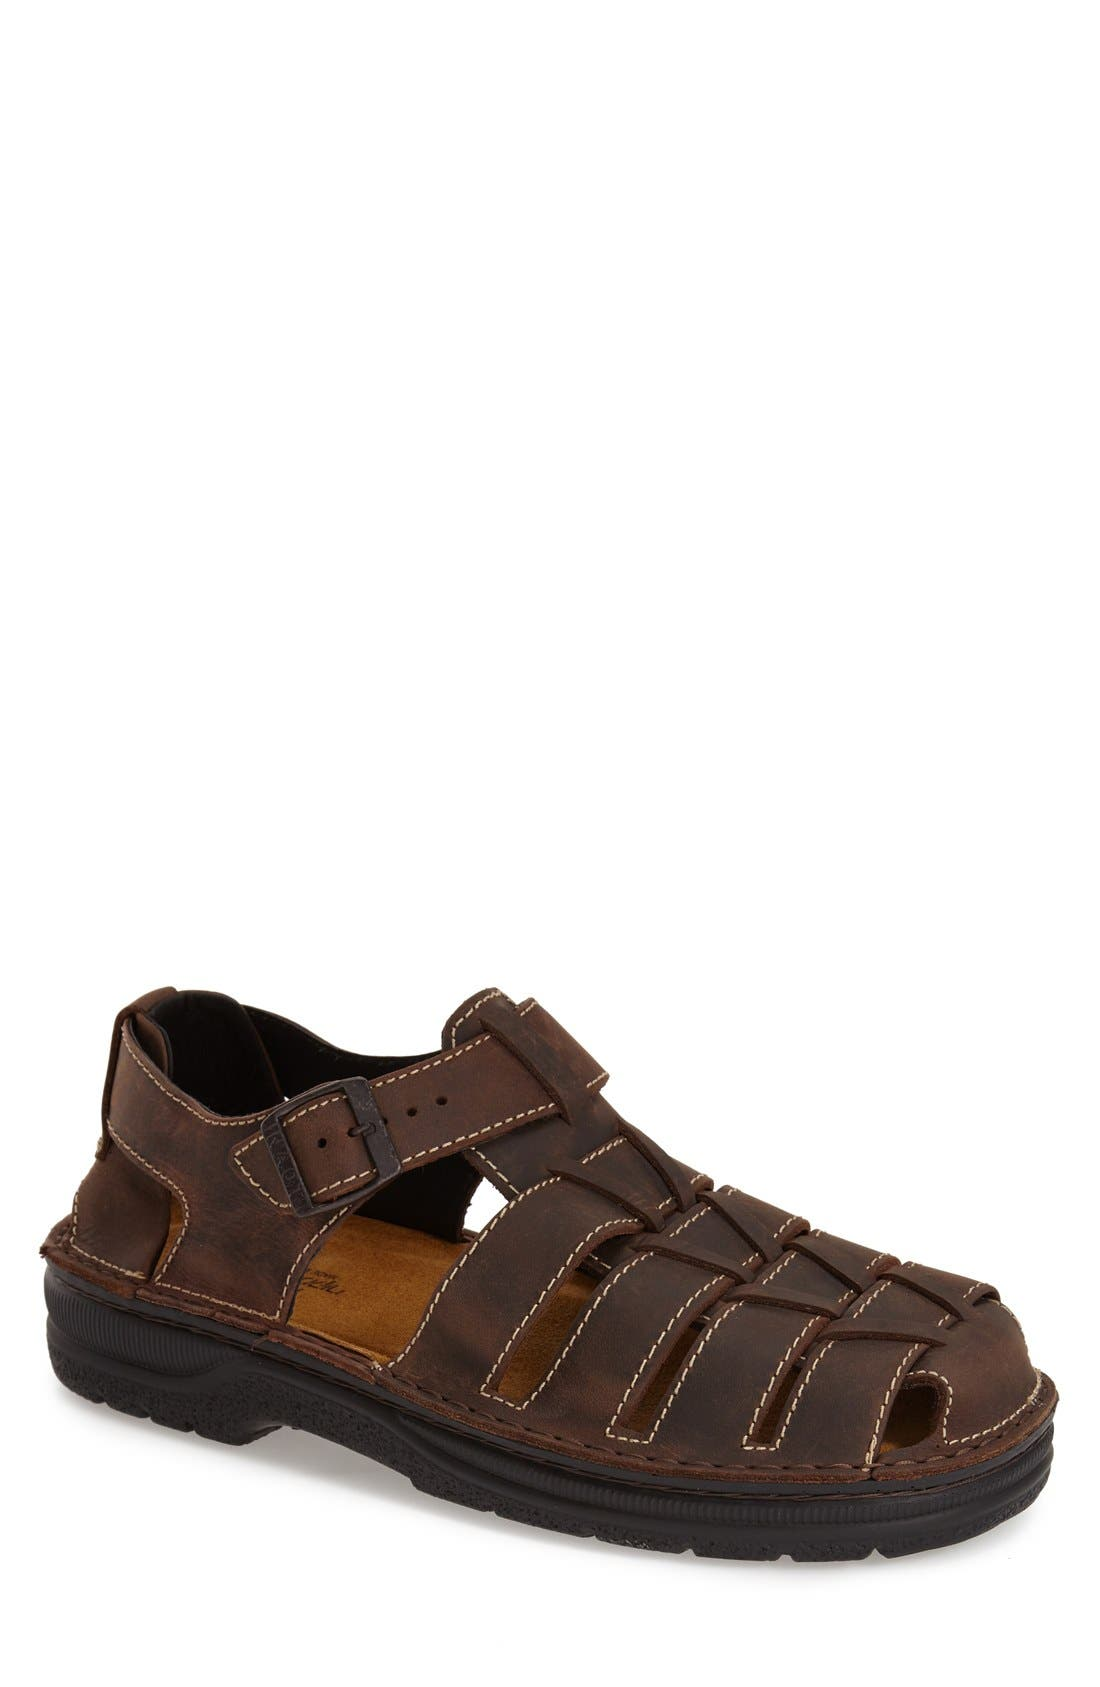 Alternate Image 1 Selected - Naot Julius Fisherman Sandal (Men)